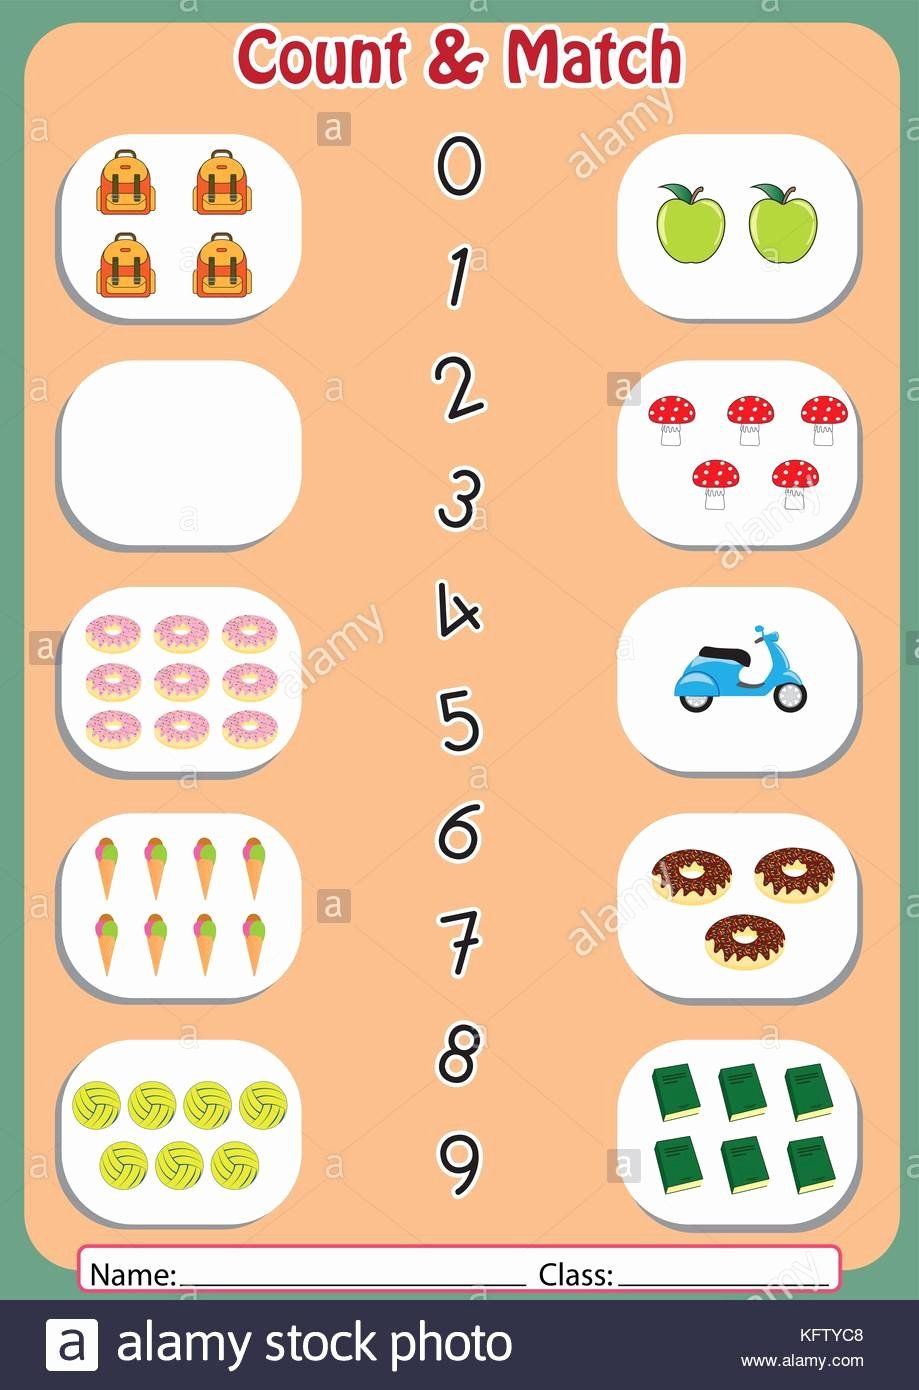 Matching Objects Worksheets for Preschoolers Kids Match the Numbers to Objects Worksheet for Preschool Stock